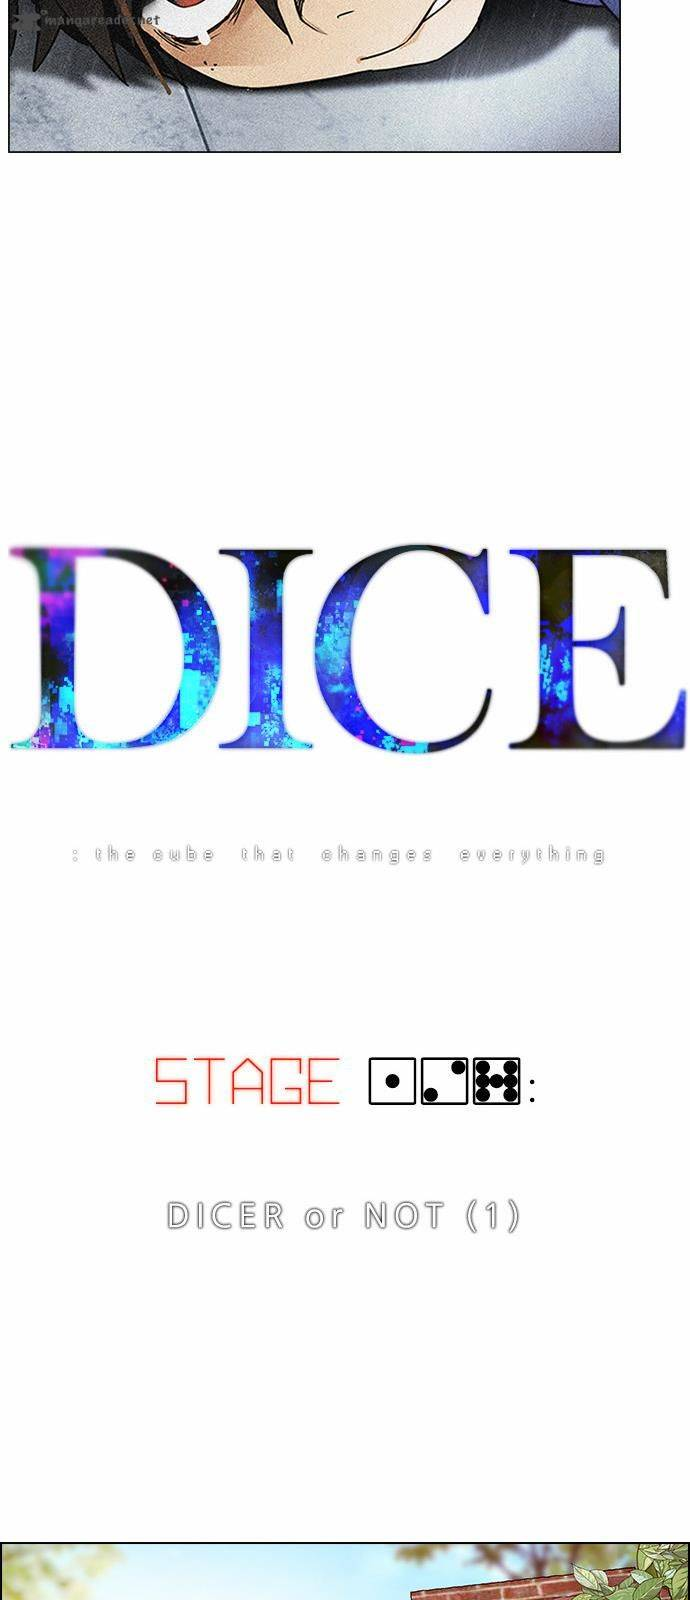 dice_the_cube_that_changes_everything_127_5